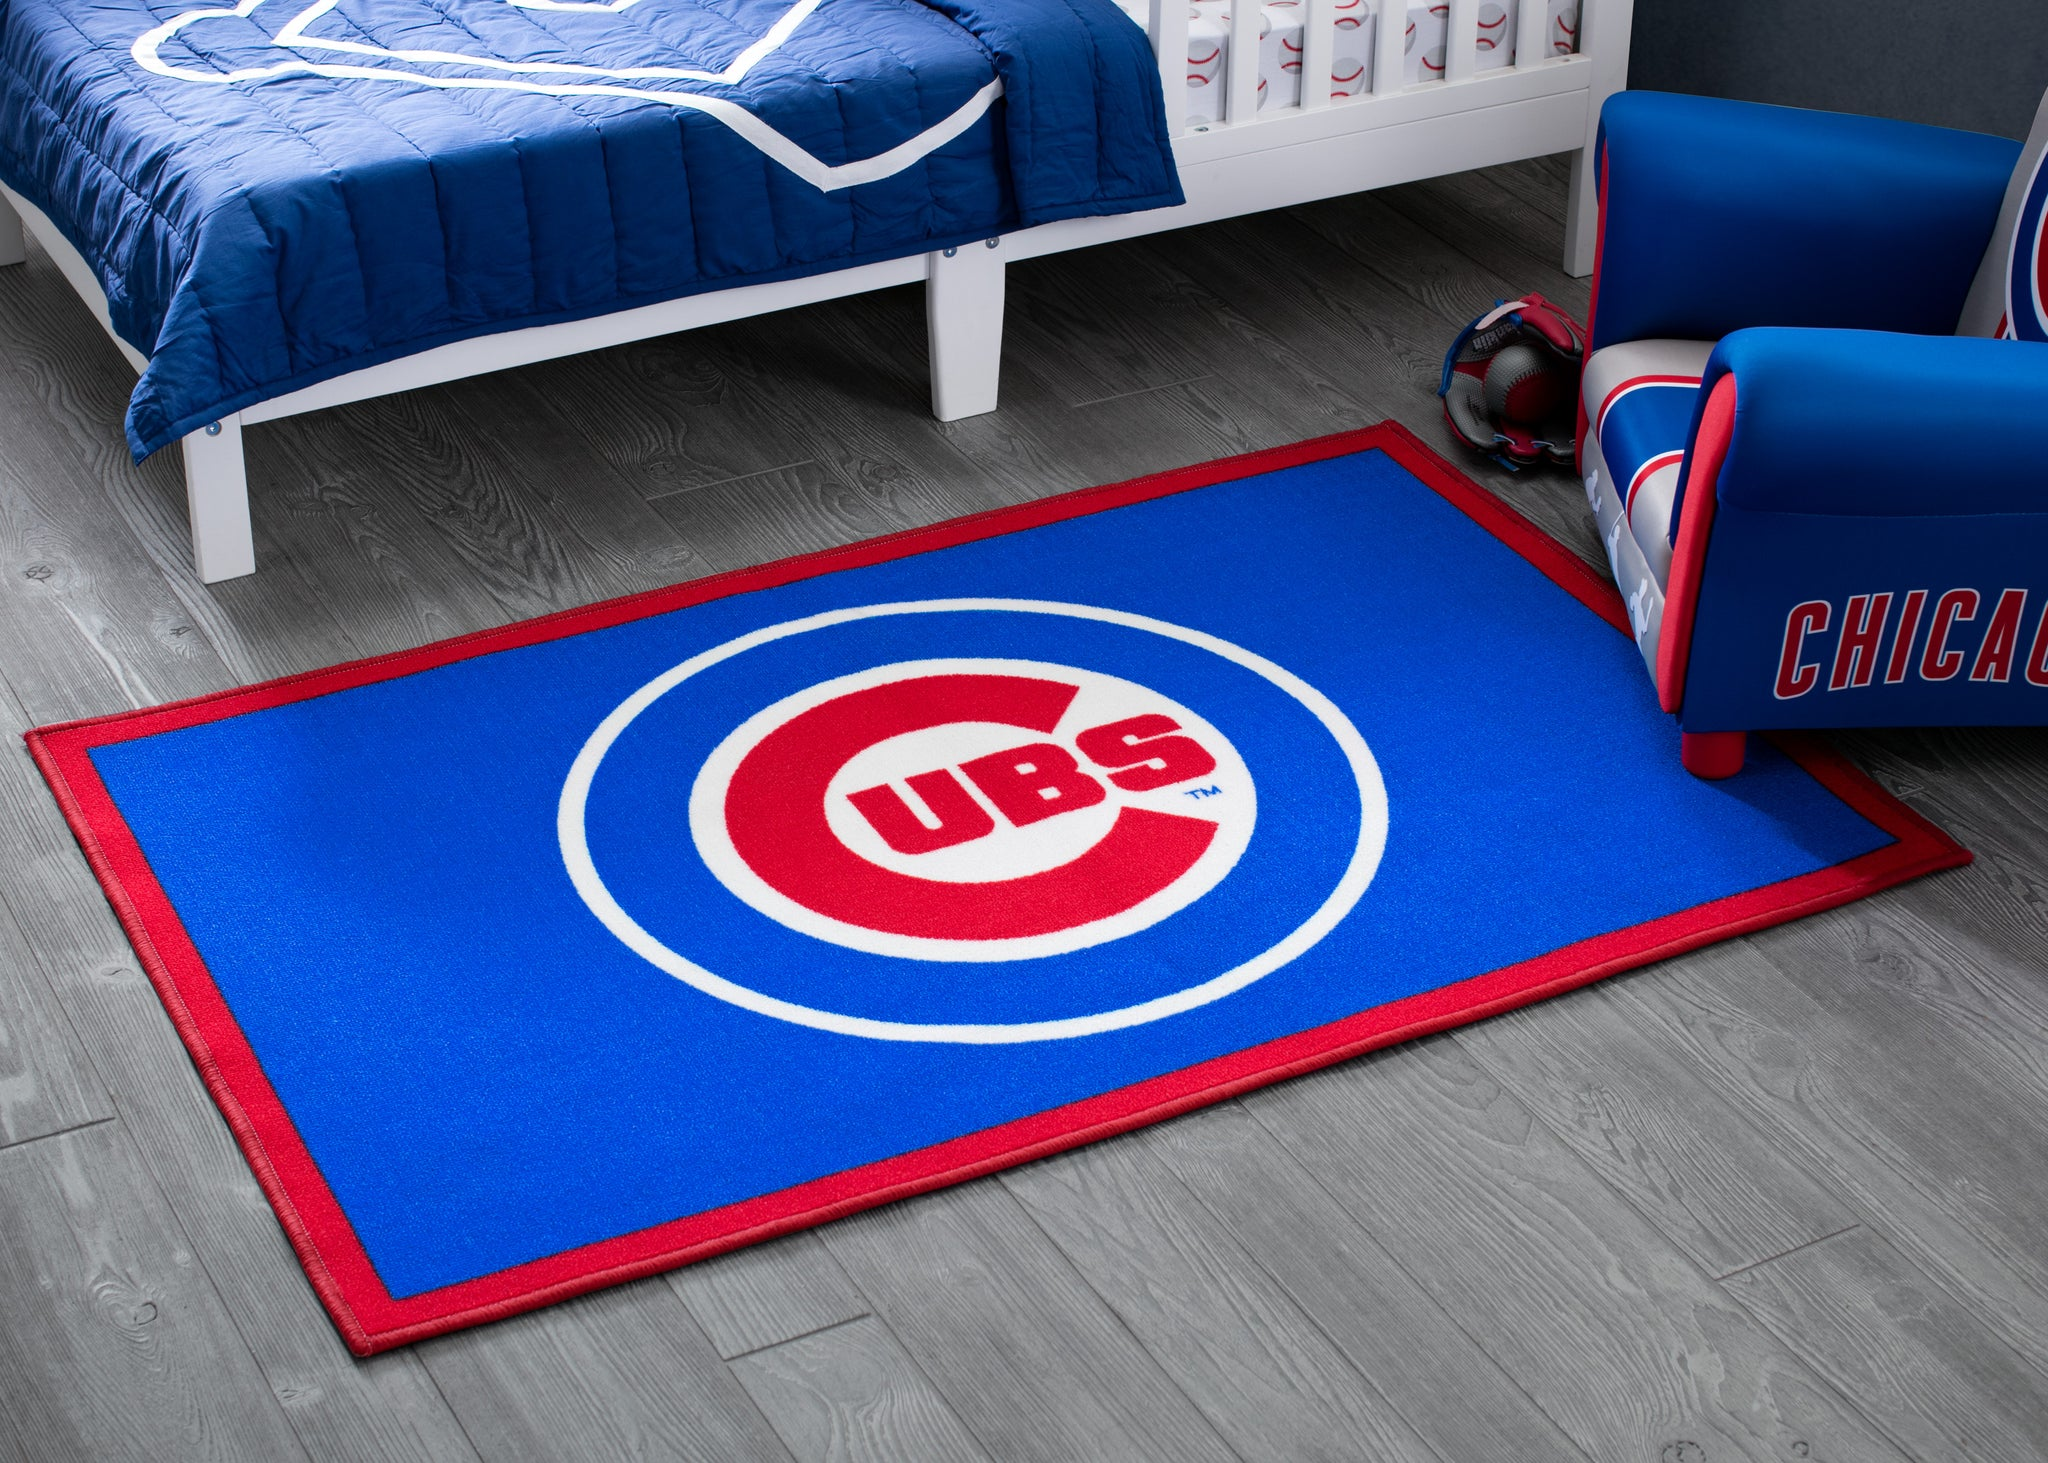 Chicago Cubs Soft Area Rug with Non-Slip Backing (4 x 2'6)